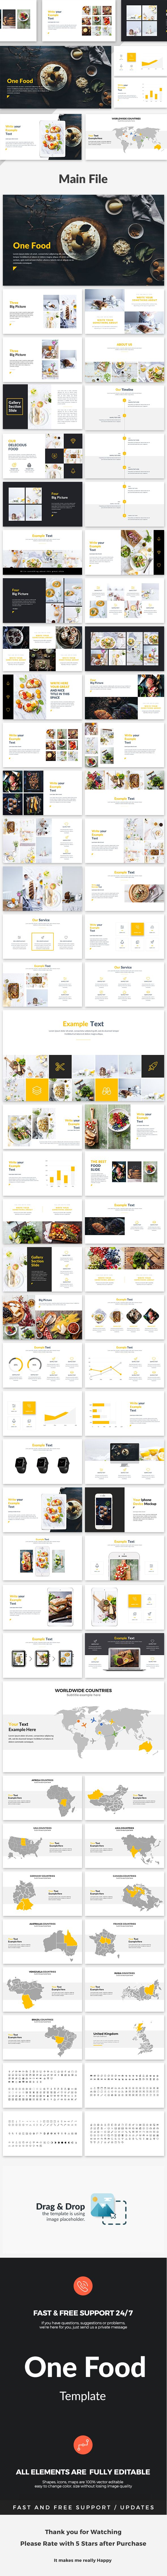 One Food - Creative Keynote Template